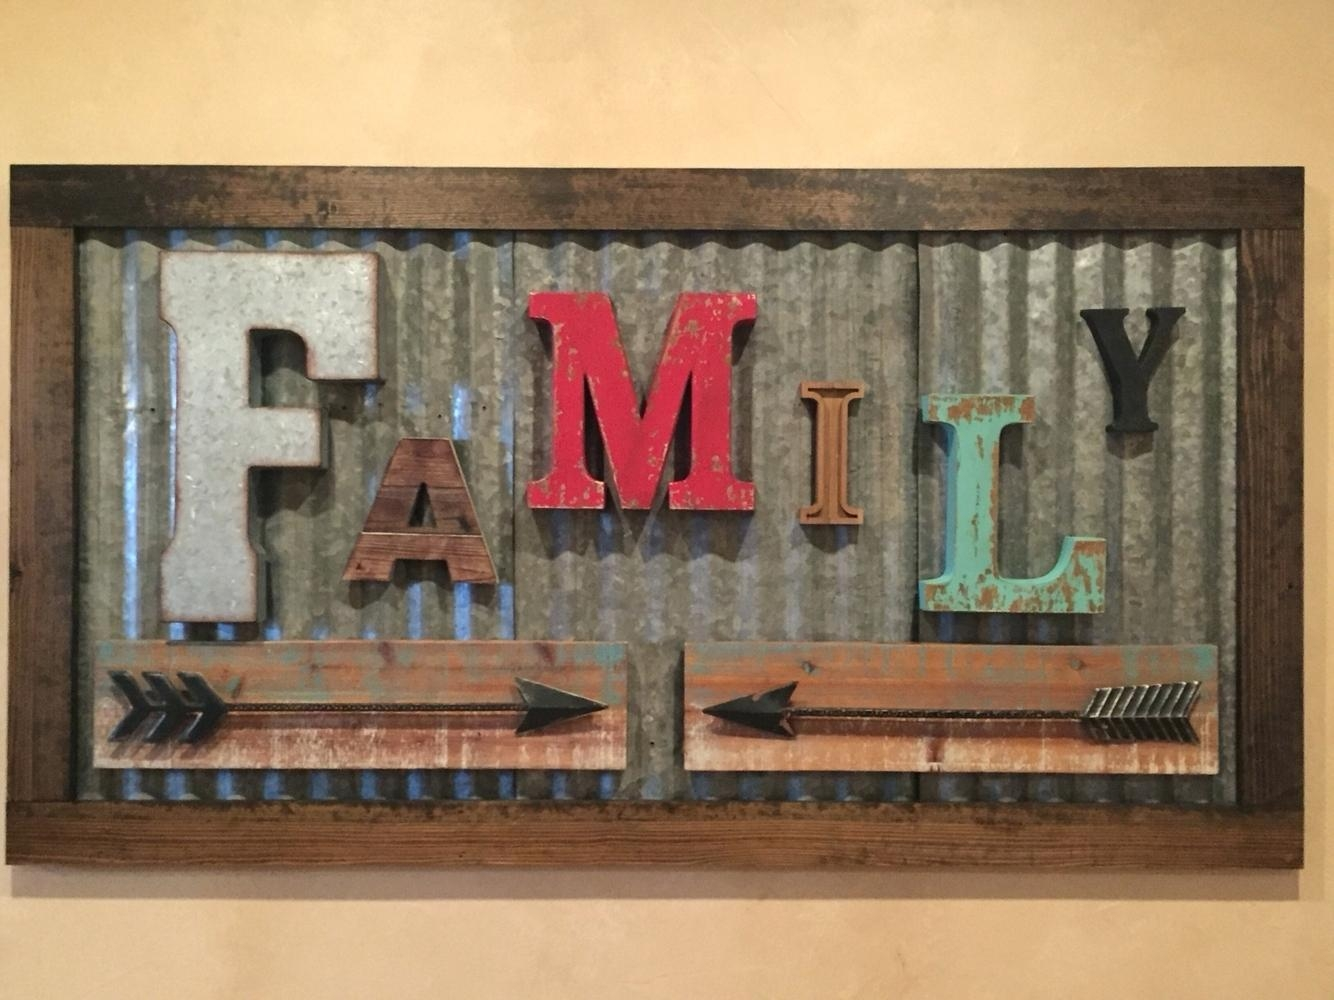 Wall Ideas : Rustic Wall Decor Gallery With A Variety Of Inside Diy Industrial Wall Art (View 11 of 20)